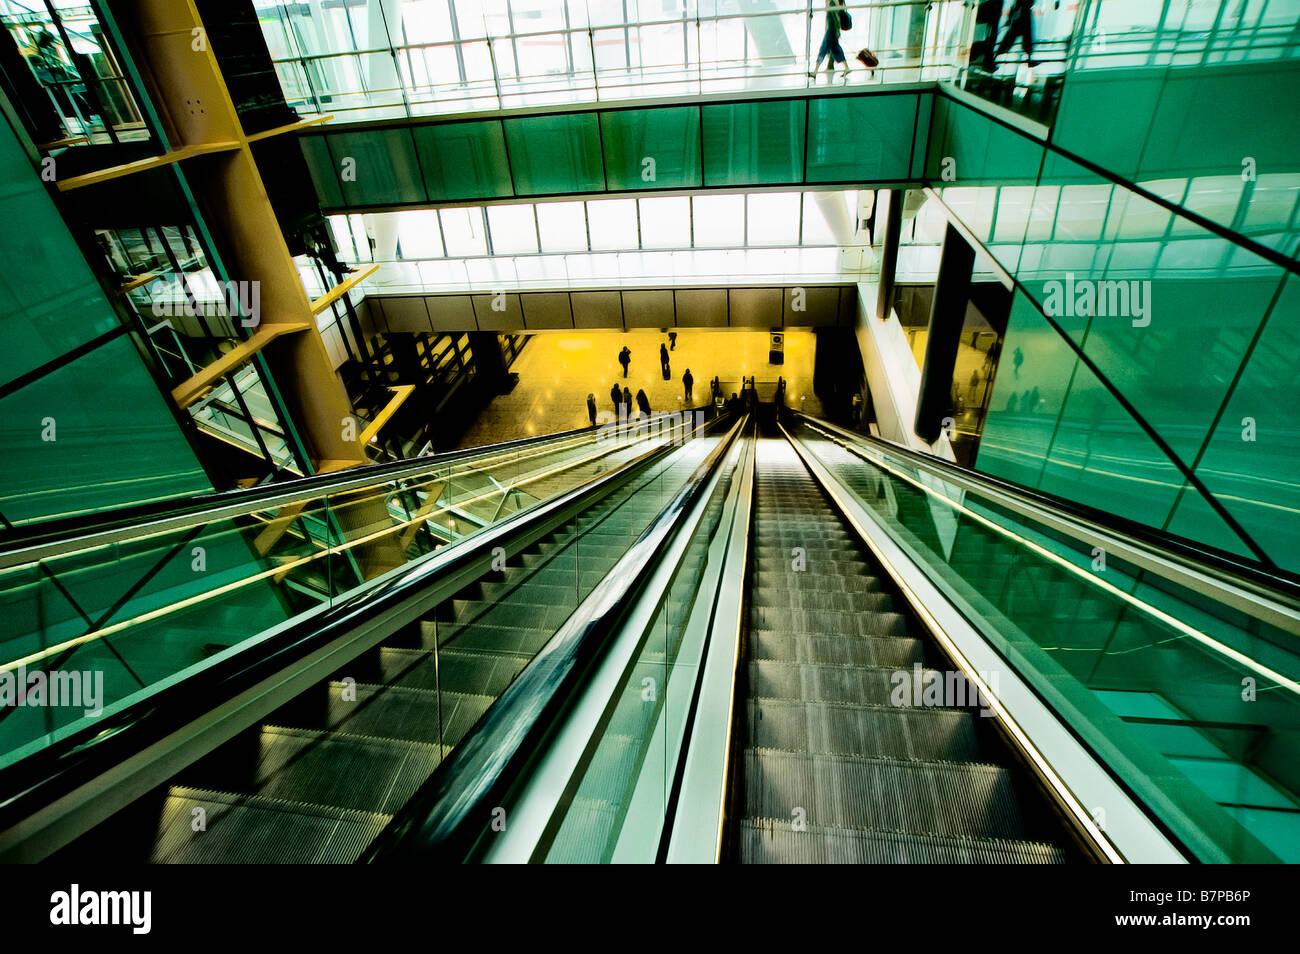 Escalators in the new Terminal 5 at Heathrow. - Stock Image